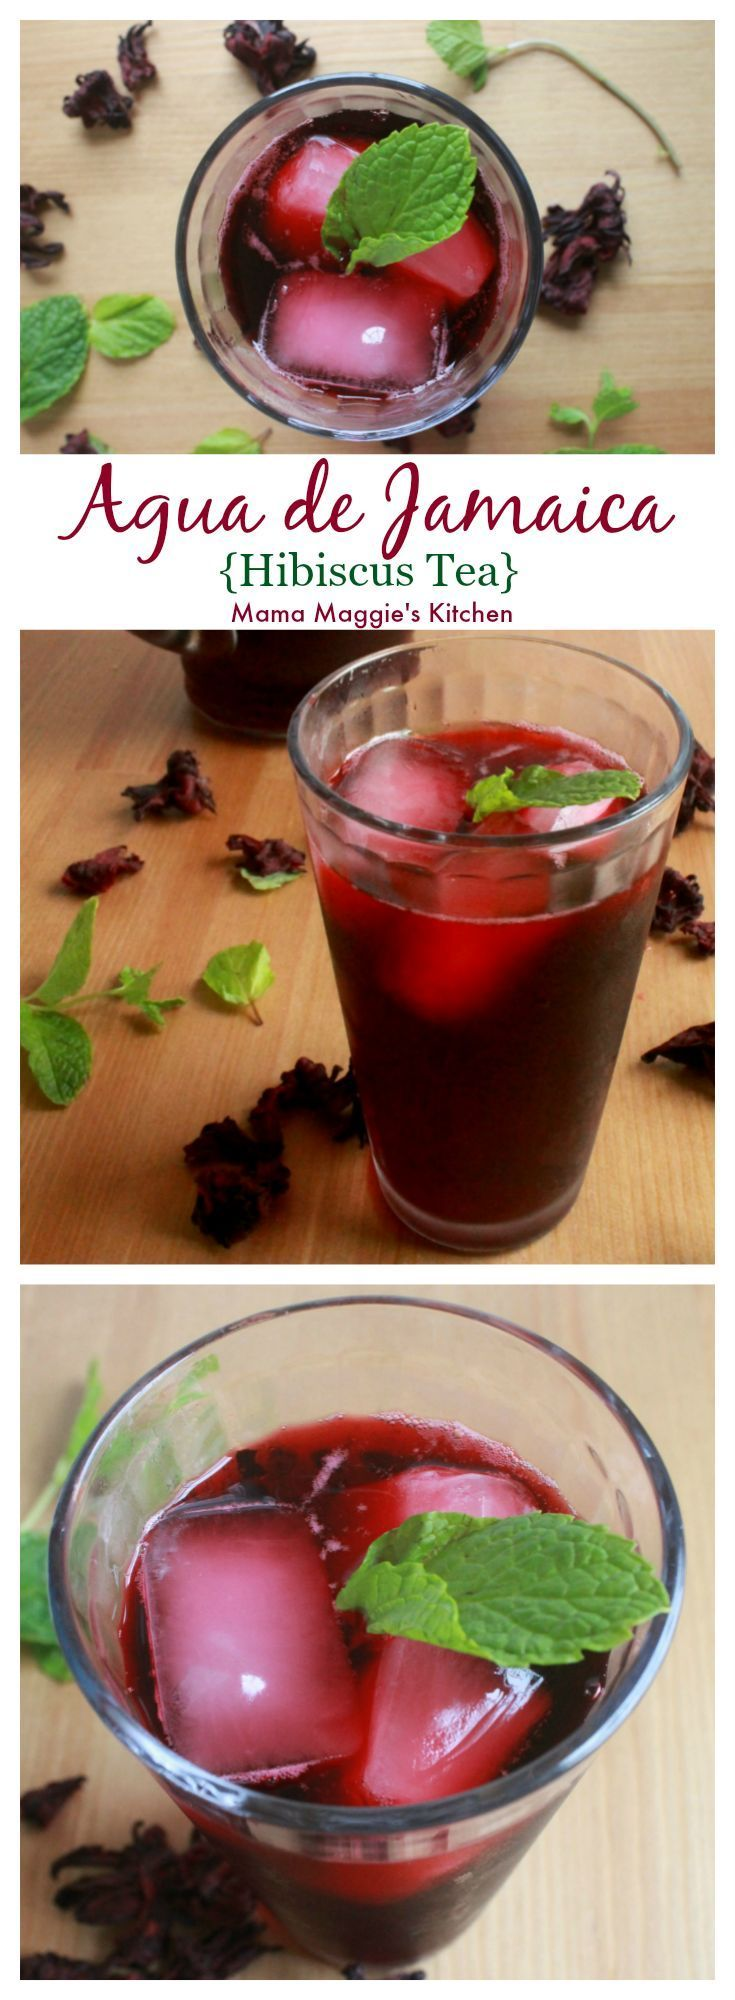 Agua de Jamaica, or Hibiscus Tea, is a refreshing Mexican drink. Sweet, tart, and SO delicious.